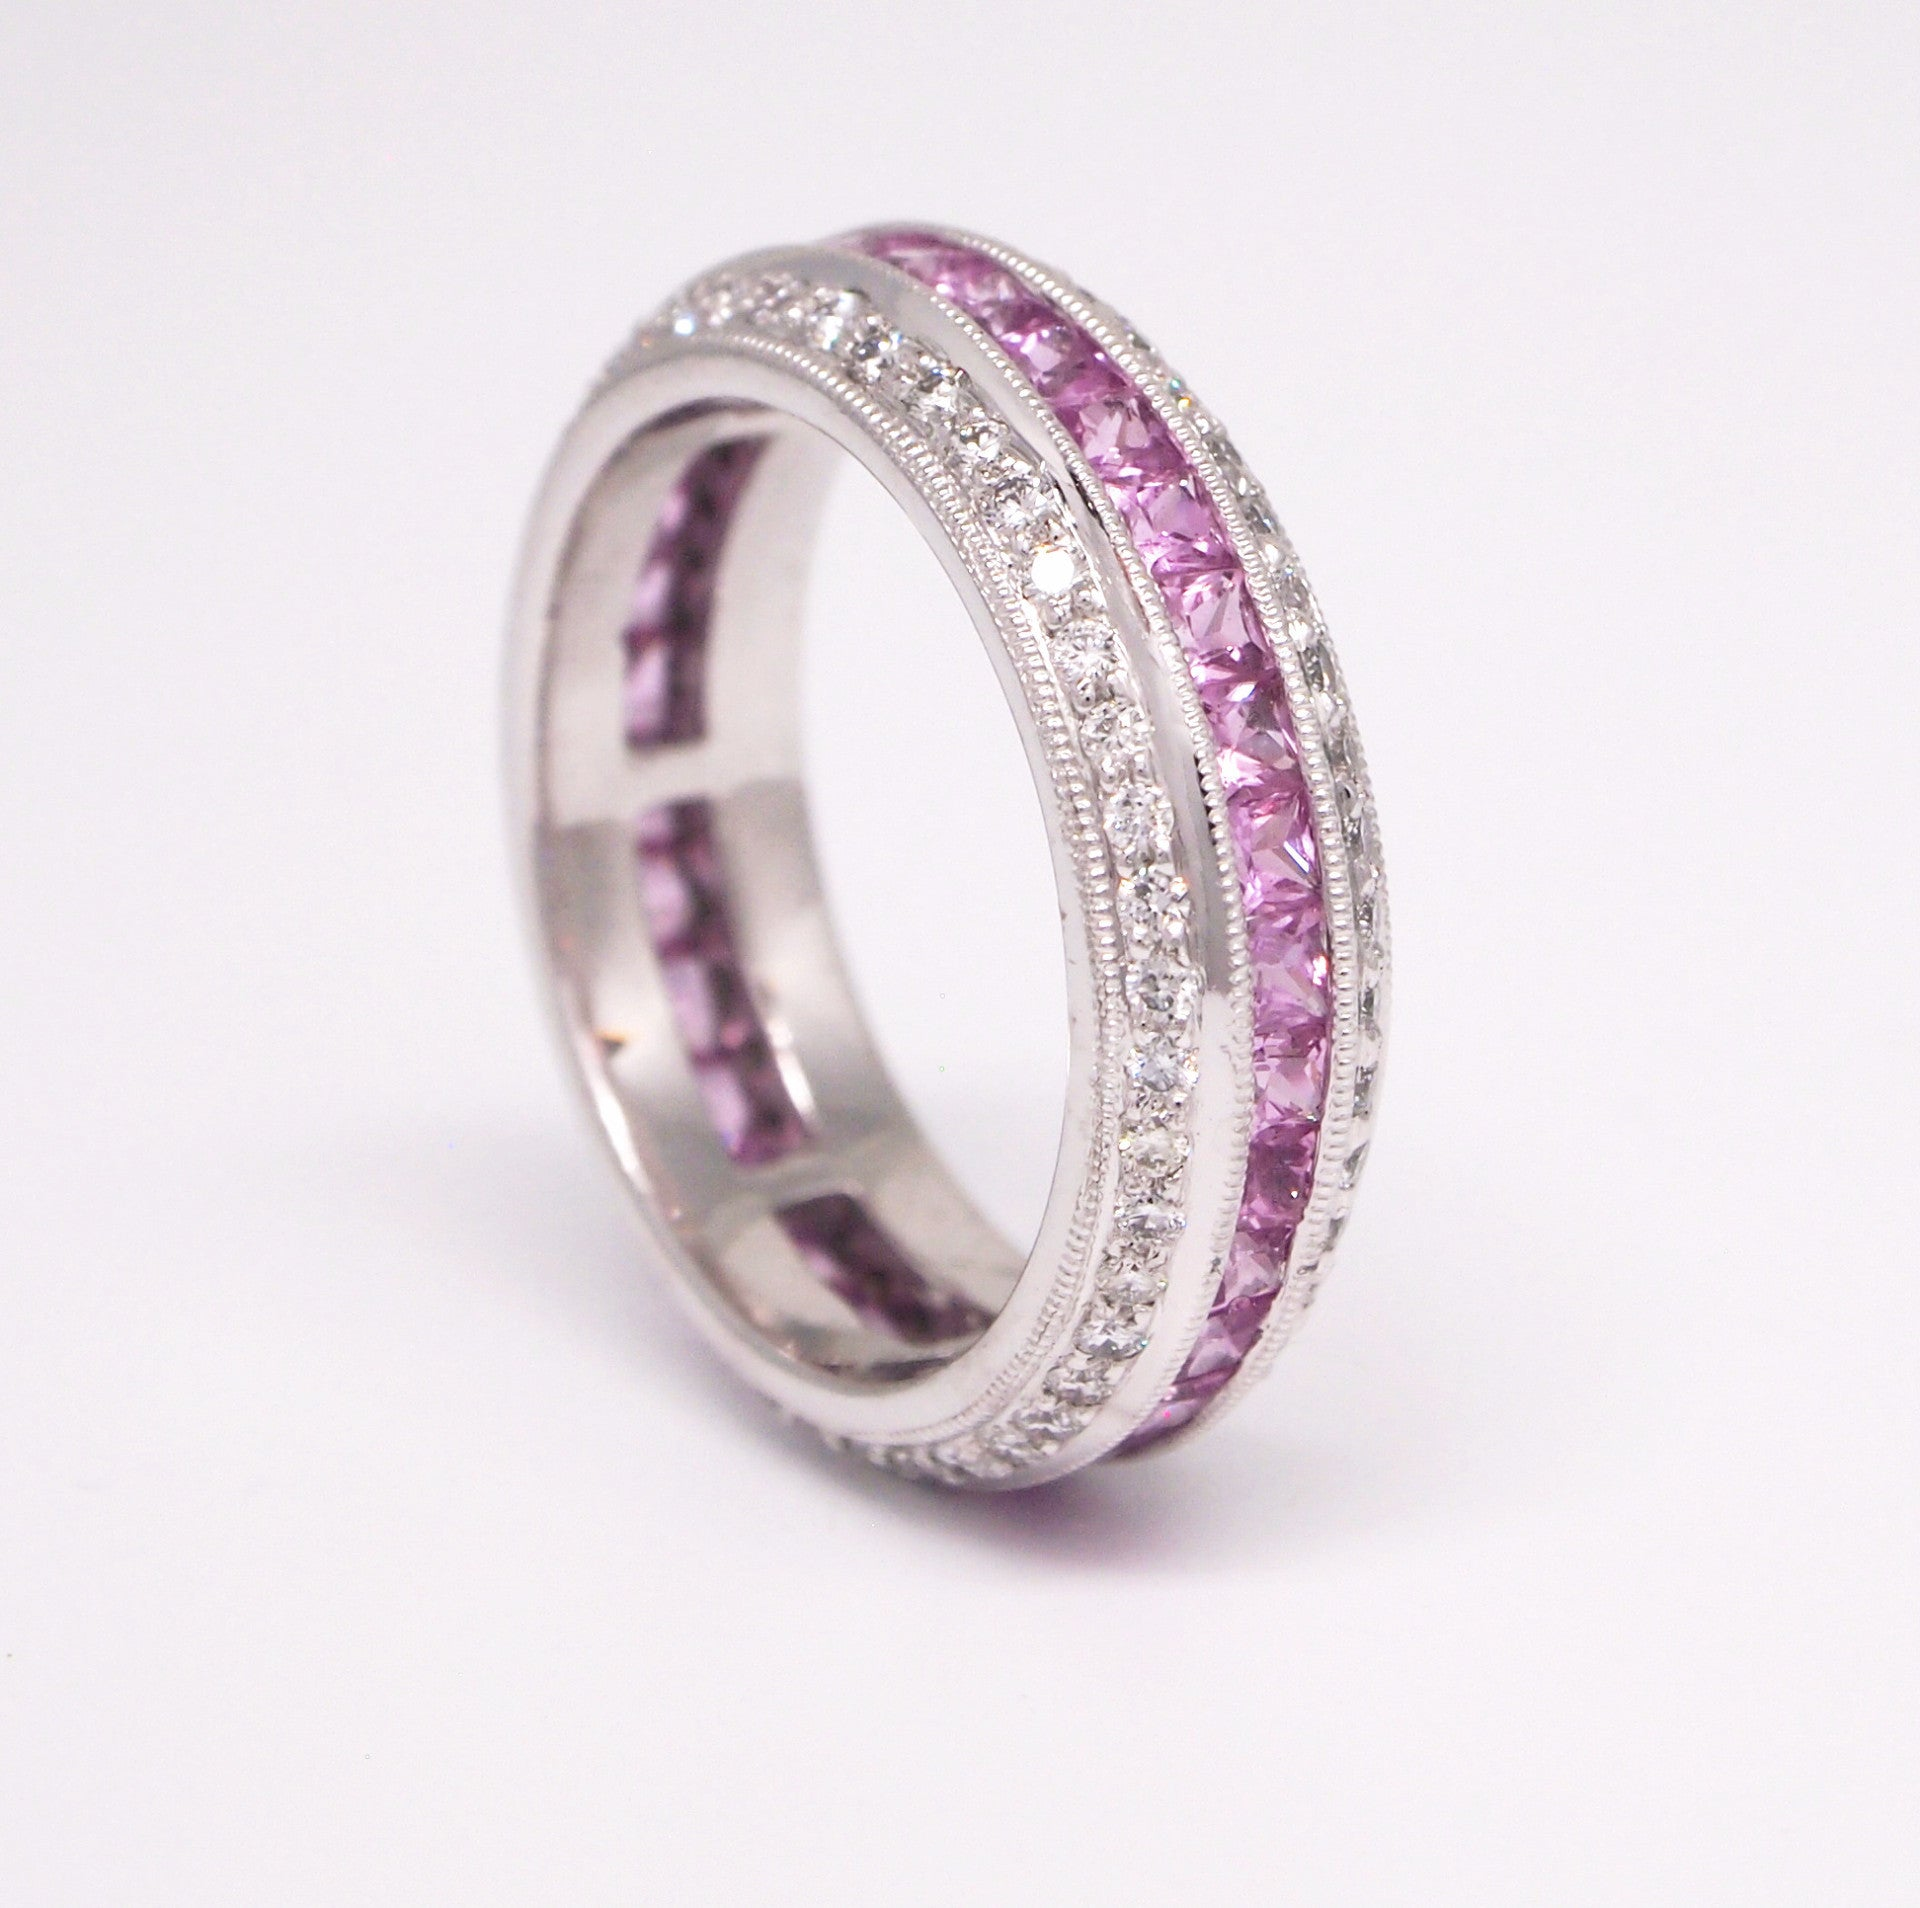 rings eternity band platinum org j flip sapphire bands id z jewelry ring diamond ruby